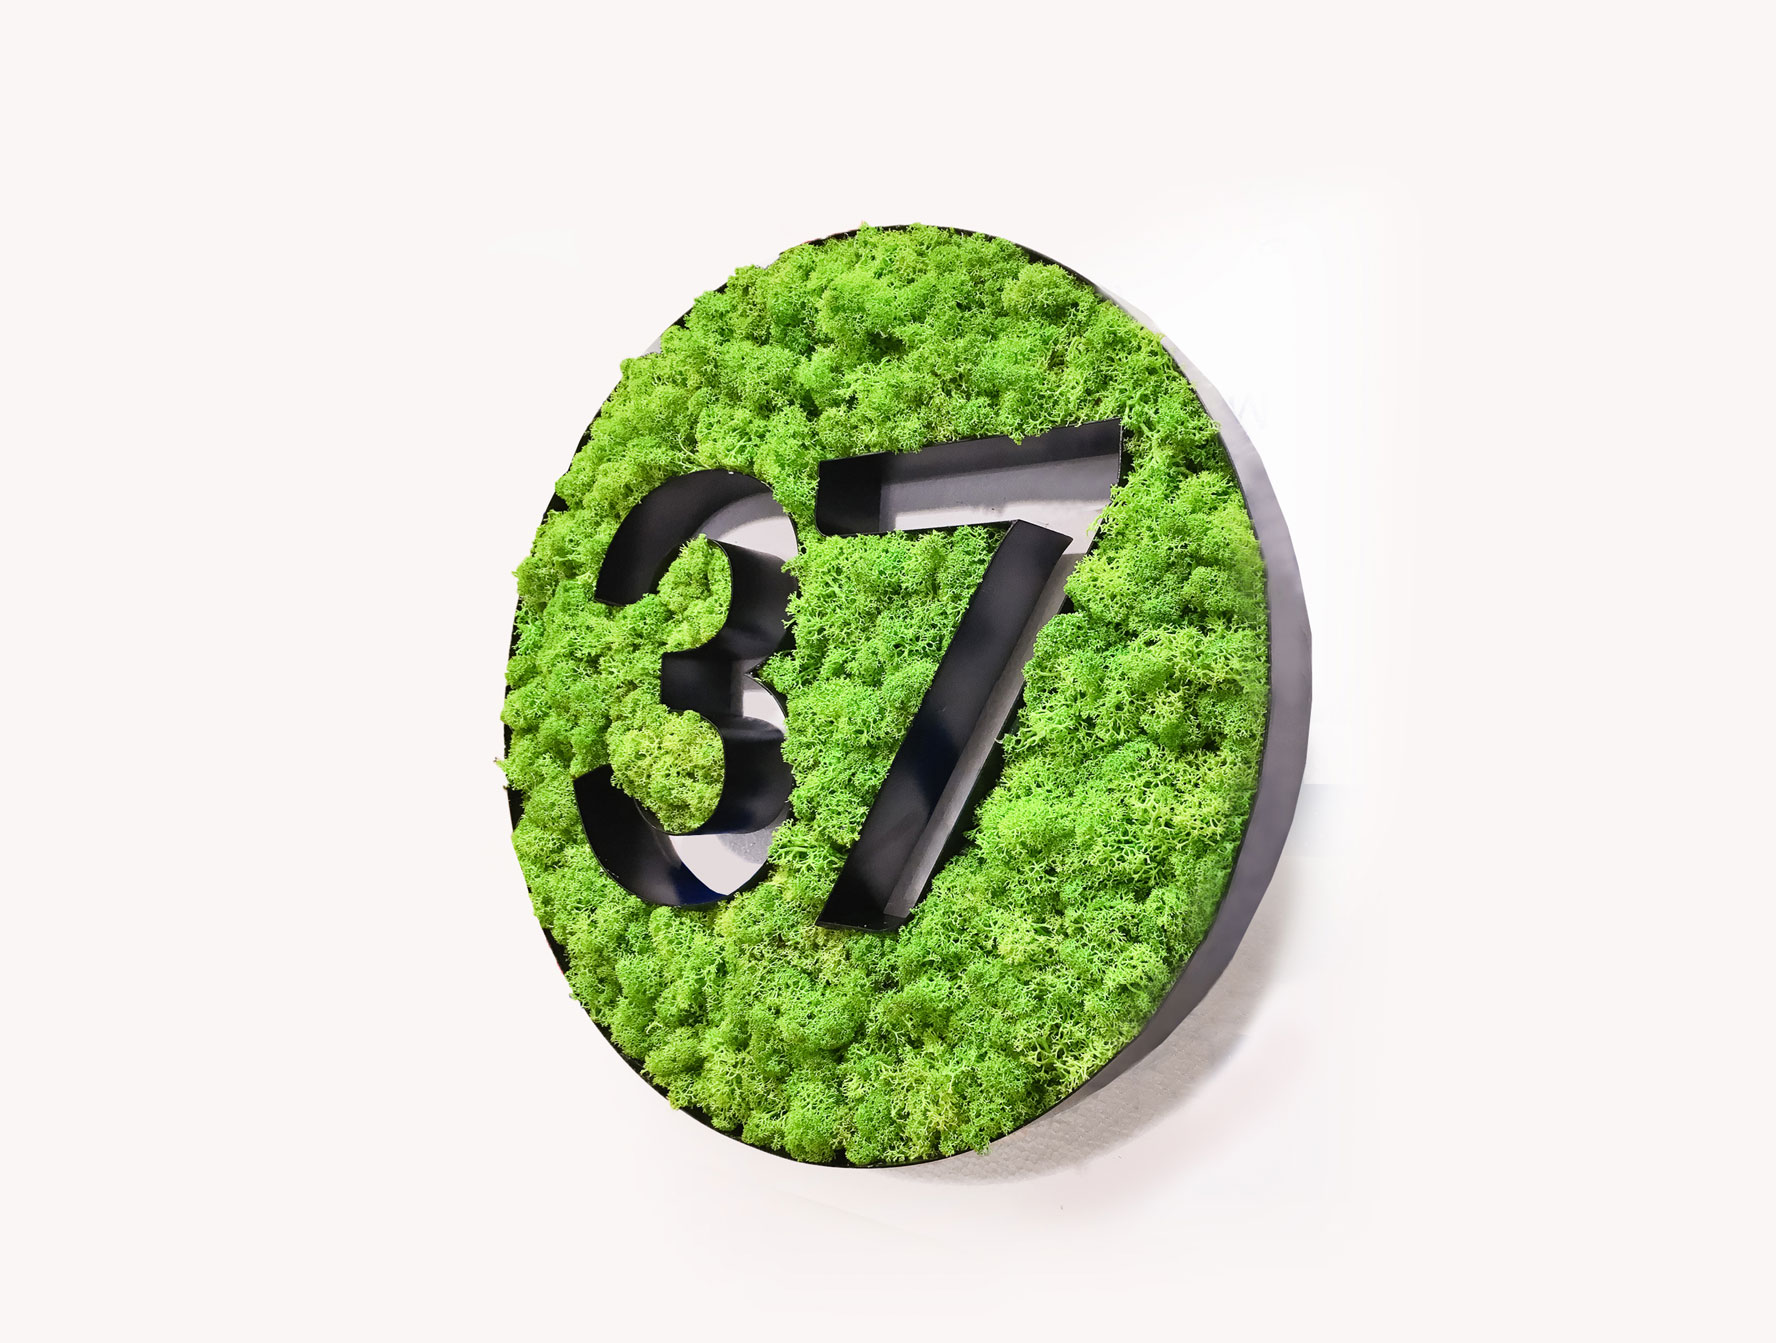 Two-toned, moss filled letters for Science37, a mobile technology and clinical trial company.